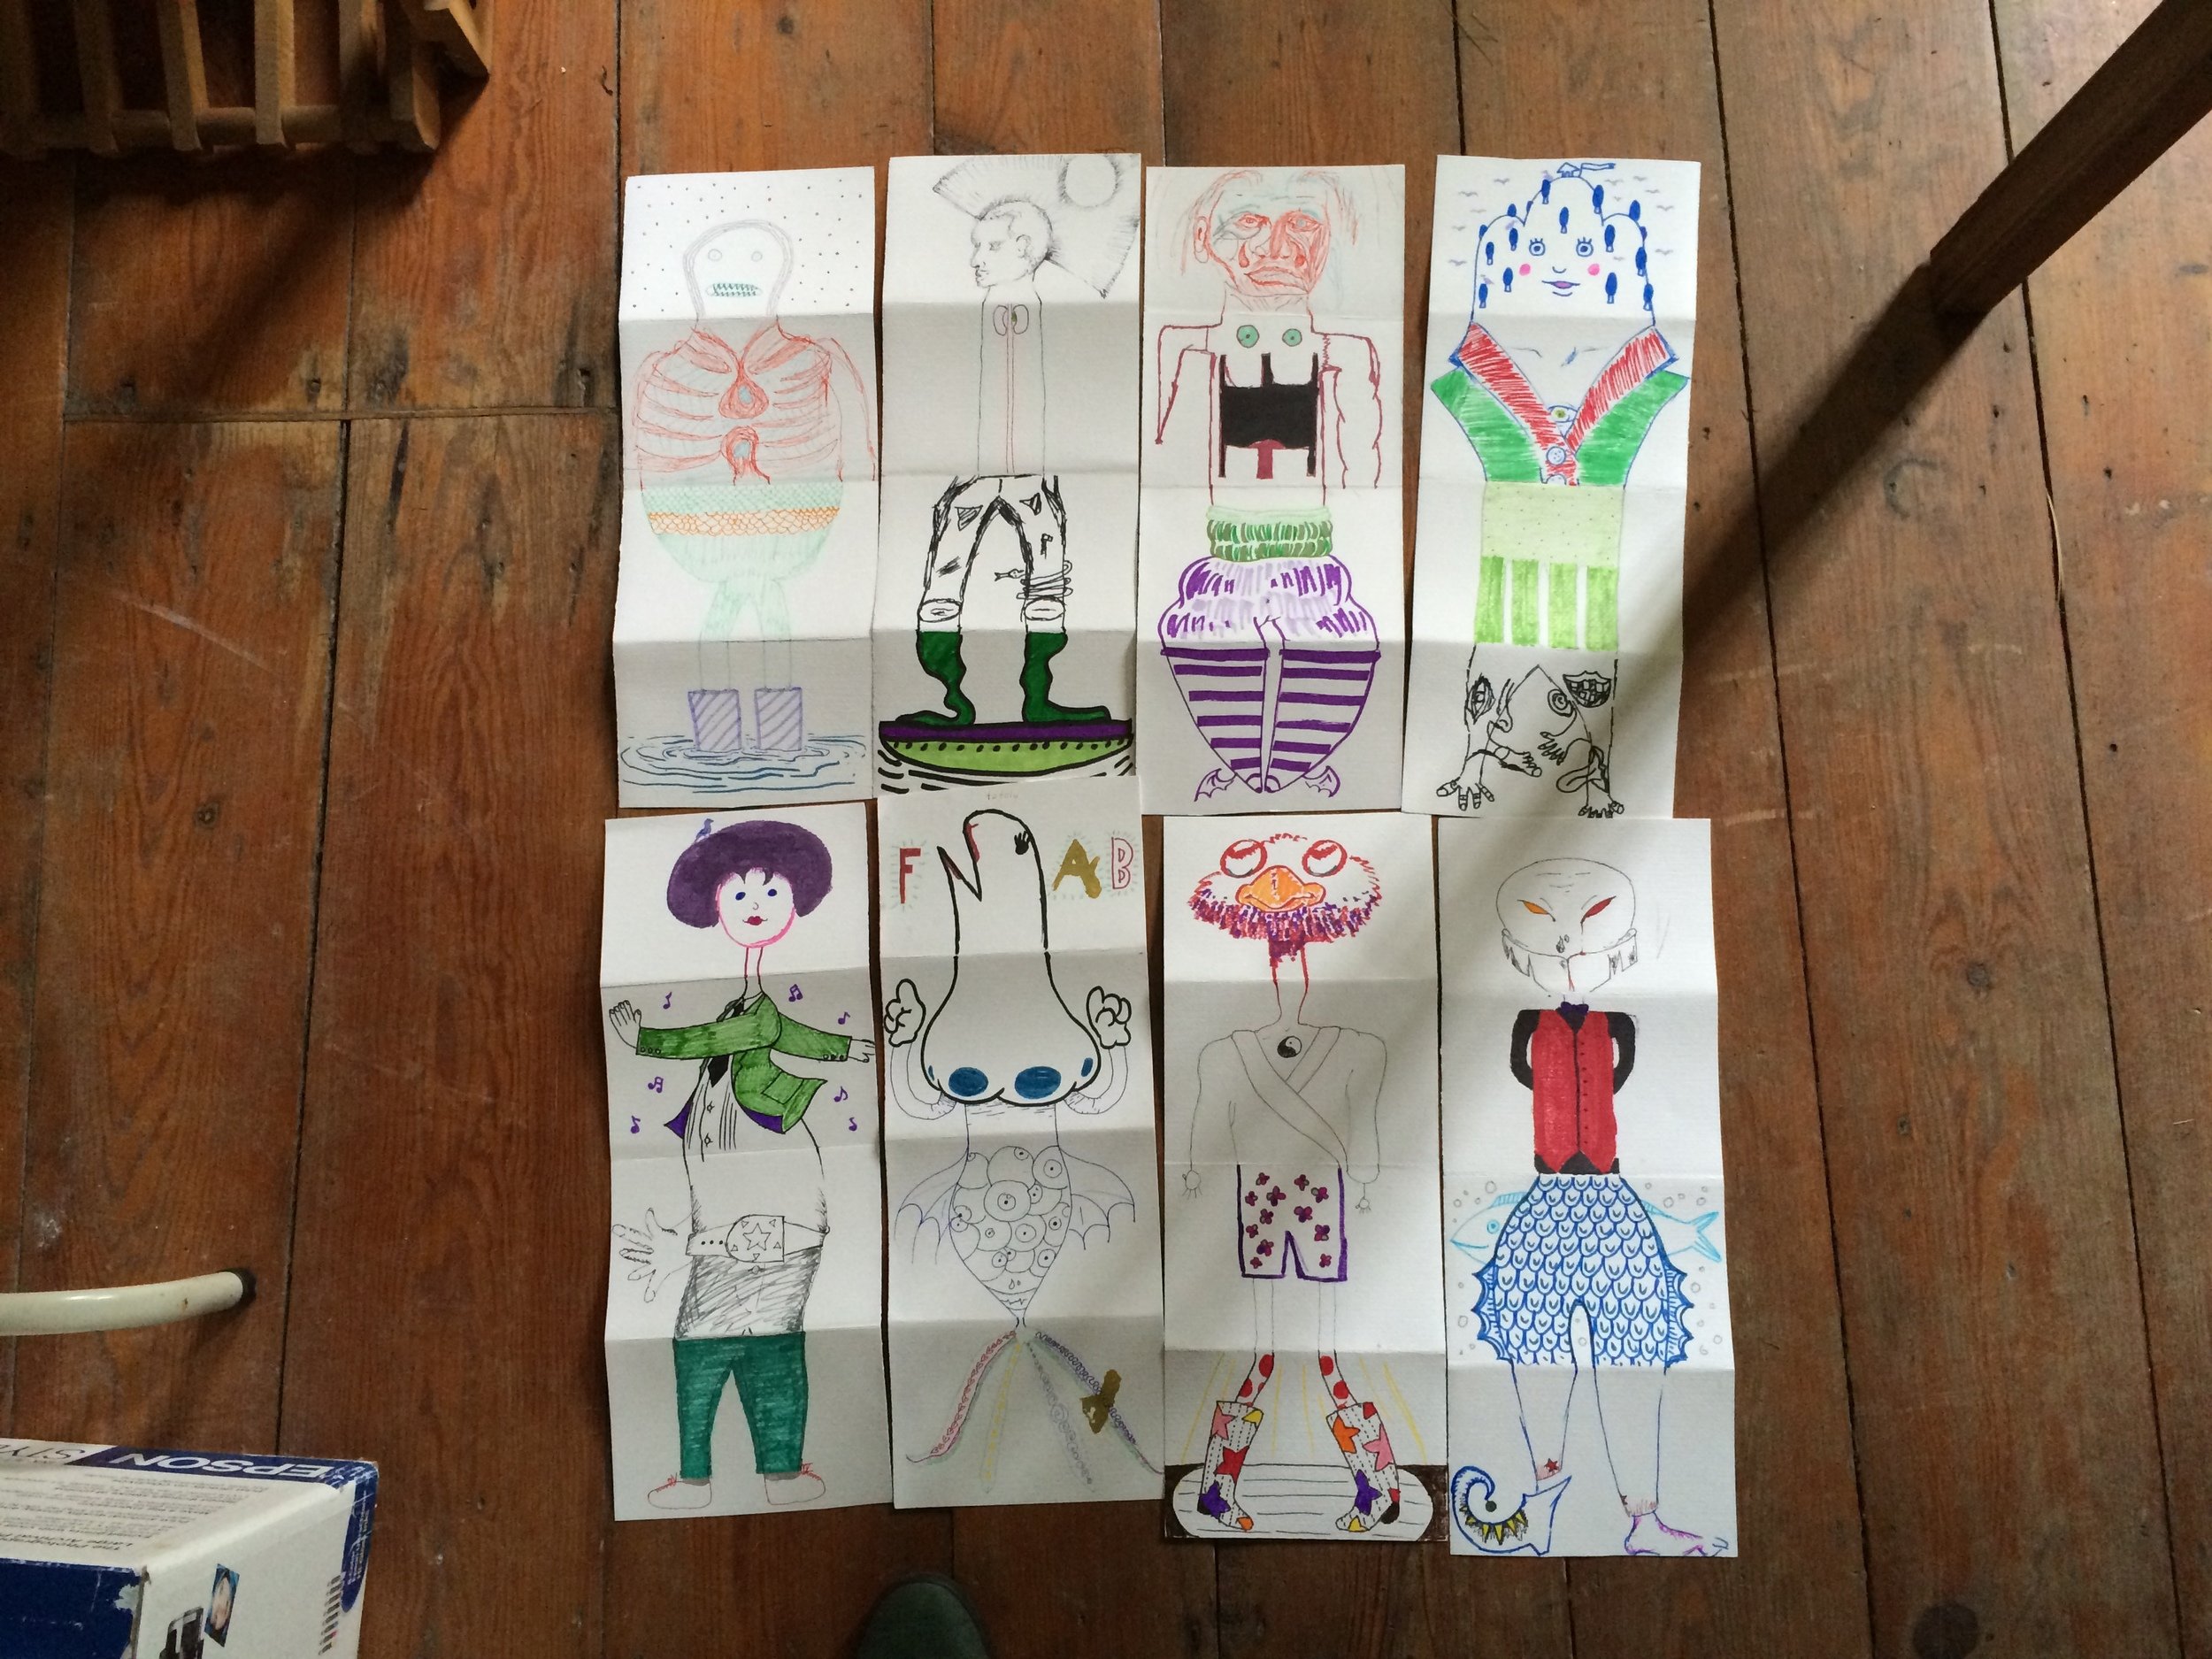 We kicked the mornings off getting into limber drawing and collaboration shape with some Exquisite Corpse exercises. Serious stuff.  2回のワークショップでは、朝一番のエクササイズとして「 優美な死骸 」をやることにしました。これでみんなちょっと緊張がとれて、頭と手が回りだすかな…と思ってやりましたが、とても上手くいきました。